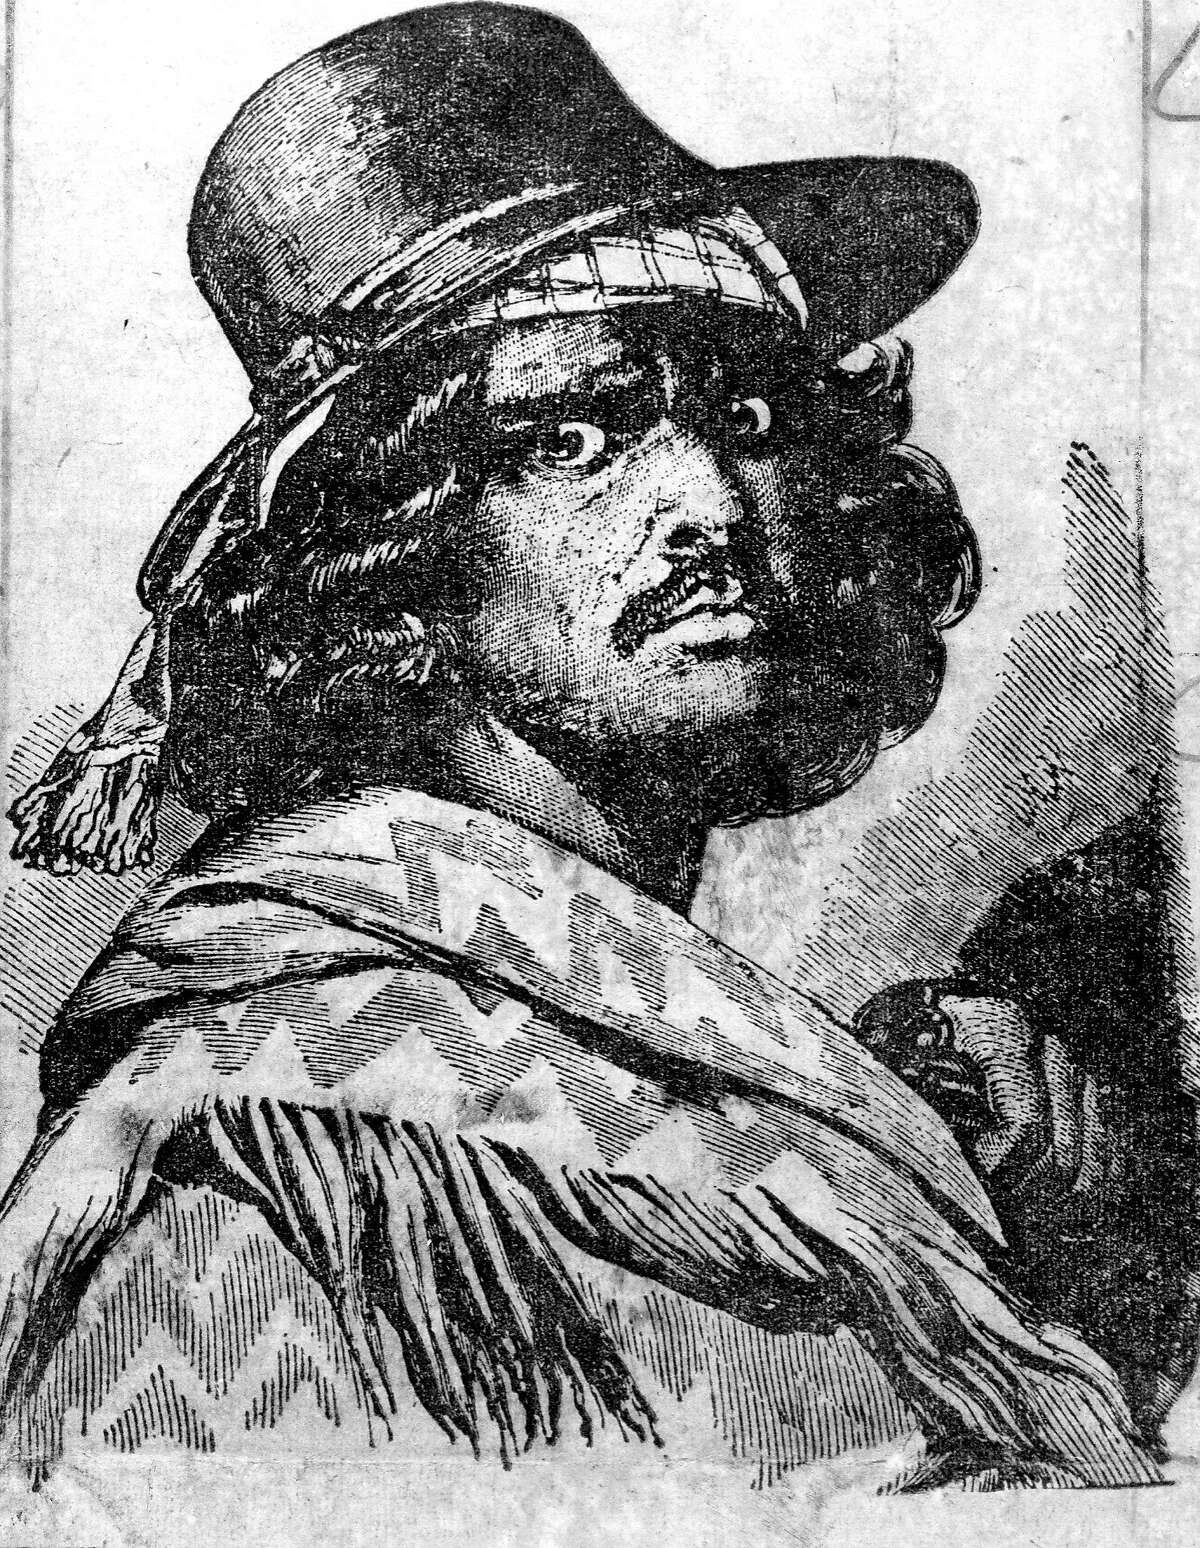 An illustration inspired by the legend of Joaquin Murieta Handout Photo ran 04/30/1980, p. 3